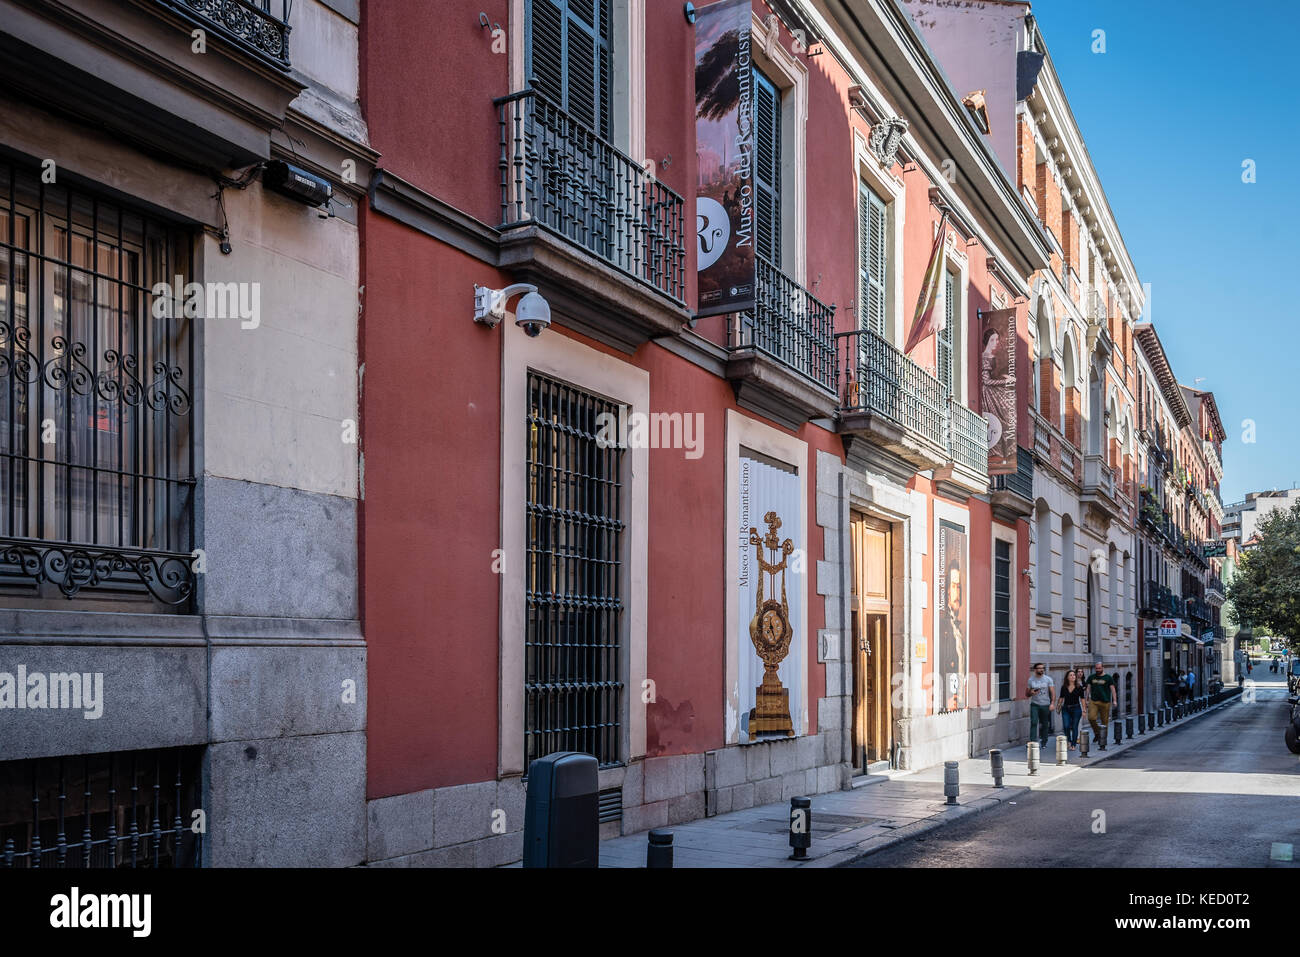 Madrid, Spain - October 14, 2017: Outdoor view of Museum of Romanticism of Madrid. It exhibits items of the romantic - Stock Image